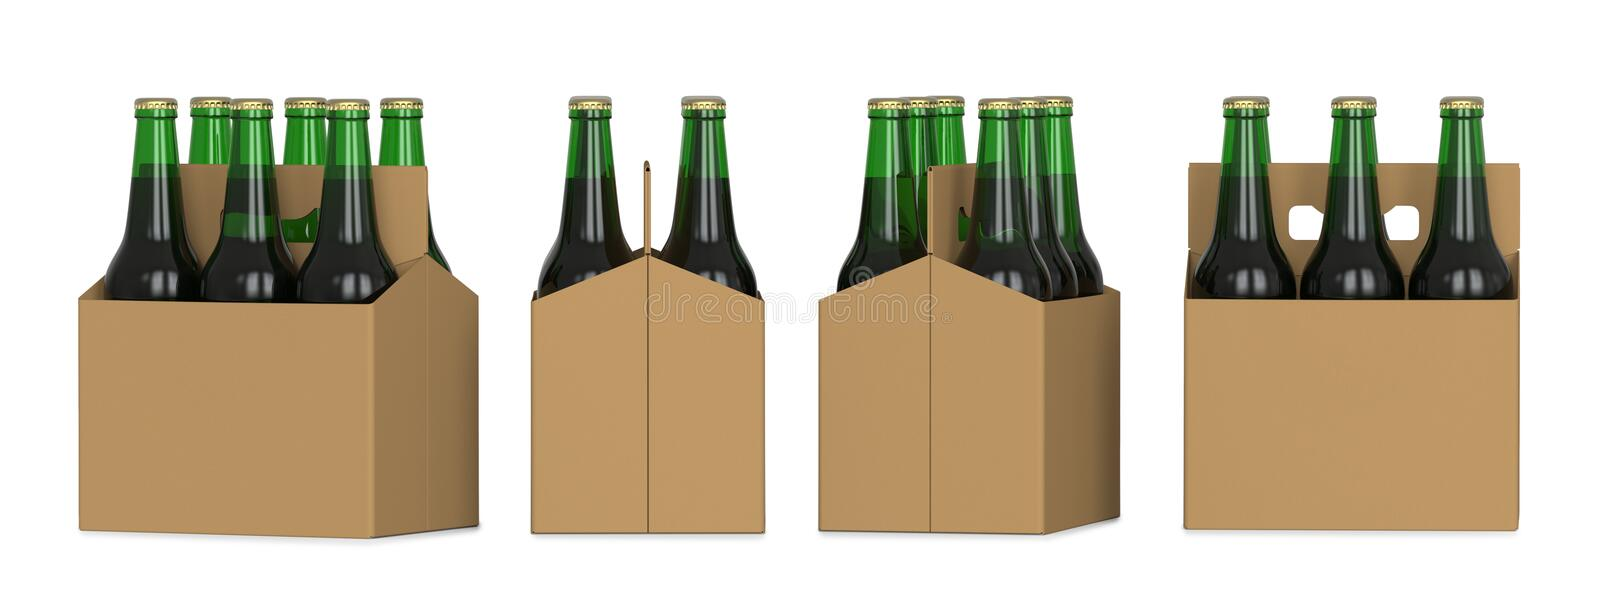 Four views of a six pack of green beer bottles in cardboard box. 3D render, isolated on white background. royalty free illustration